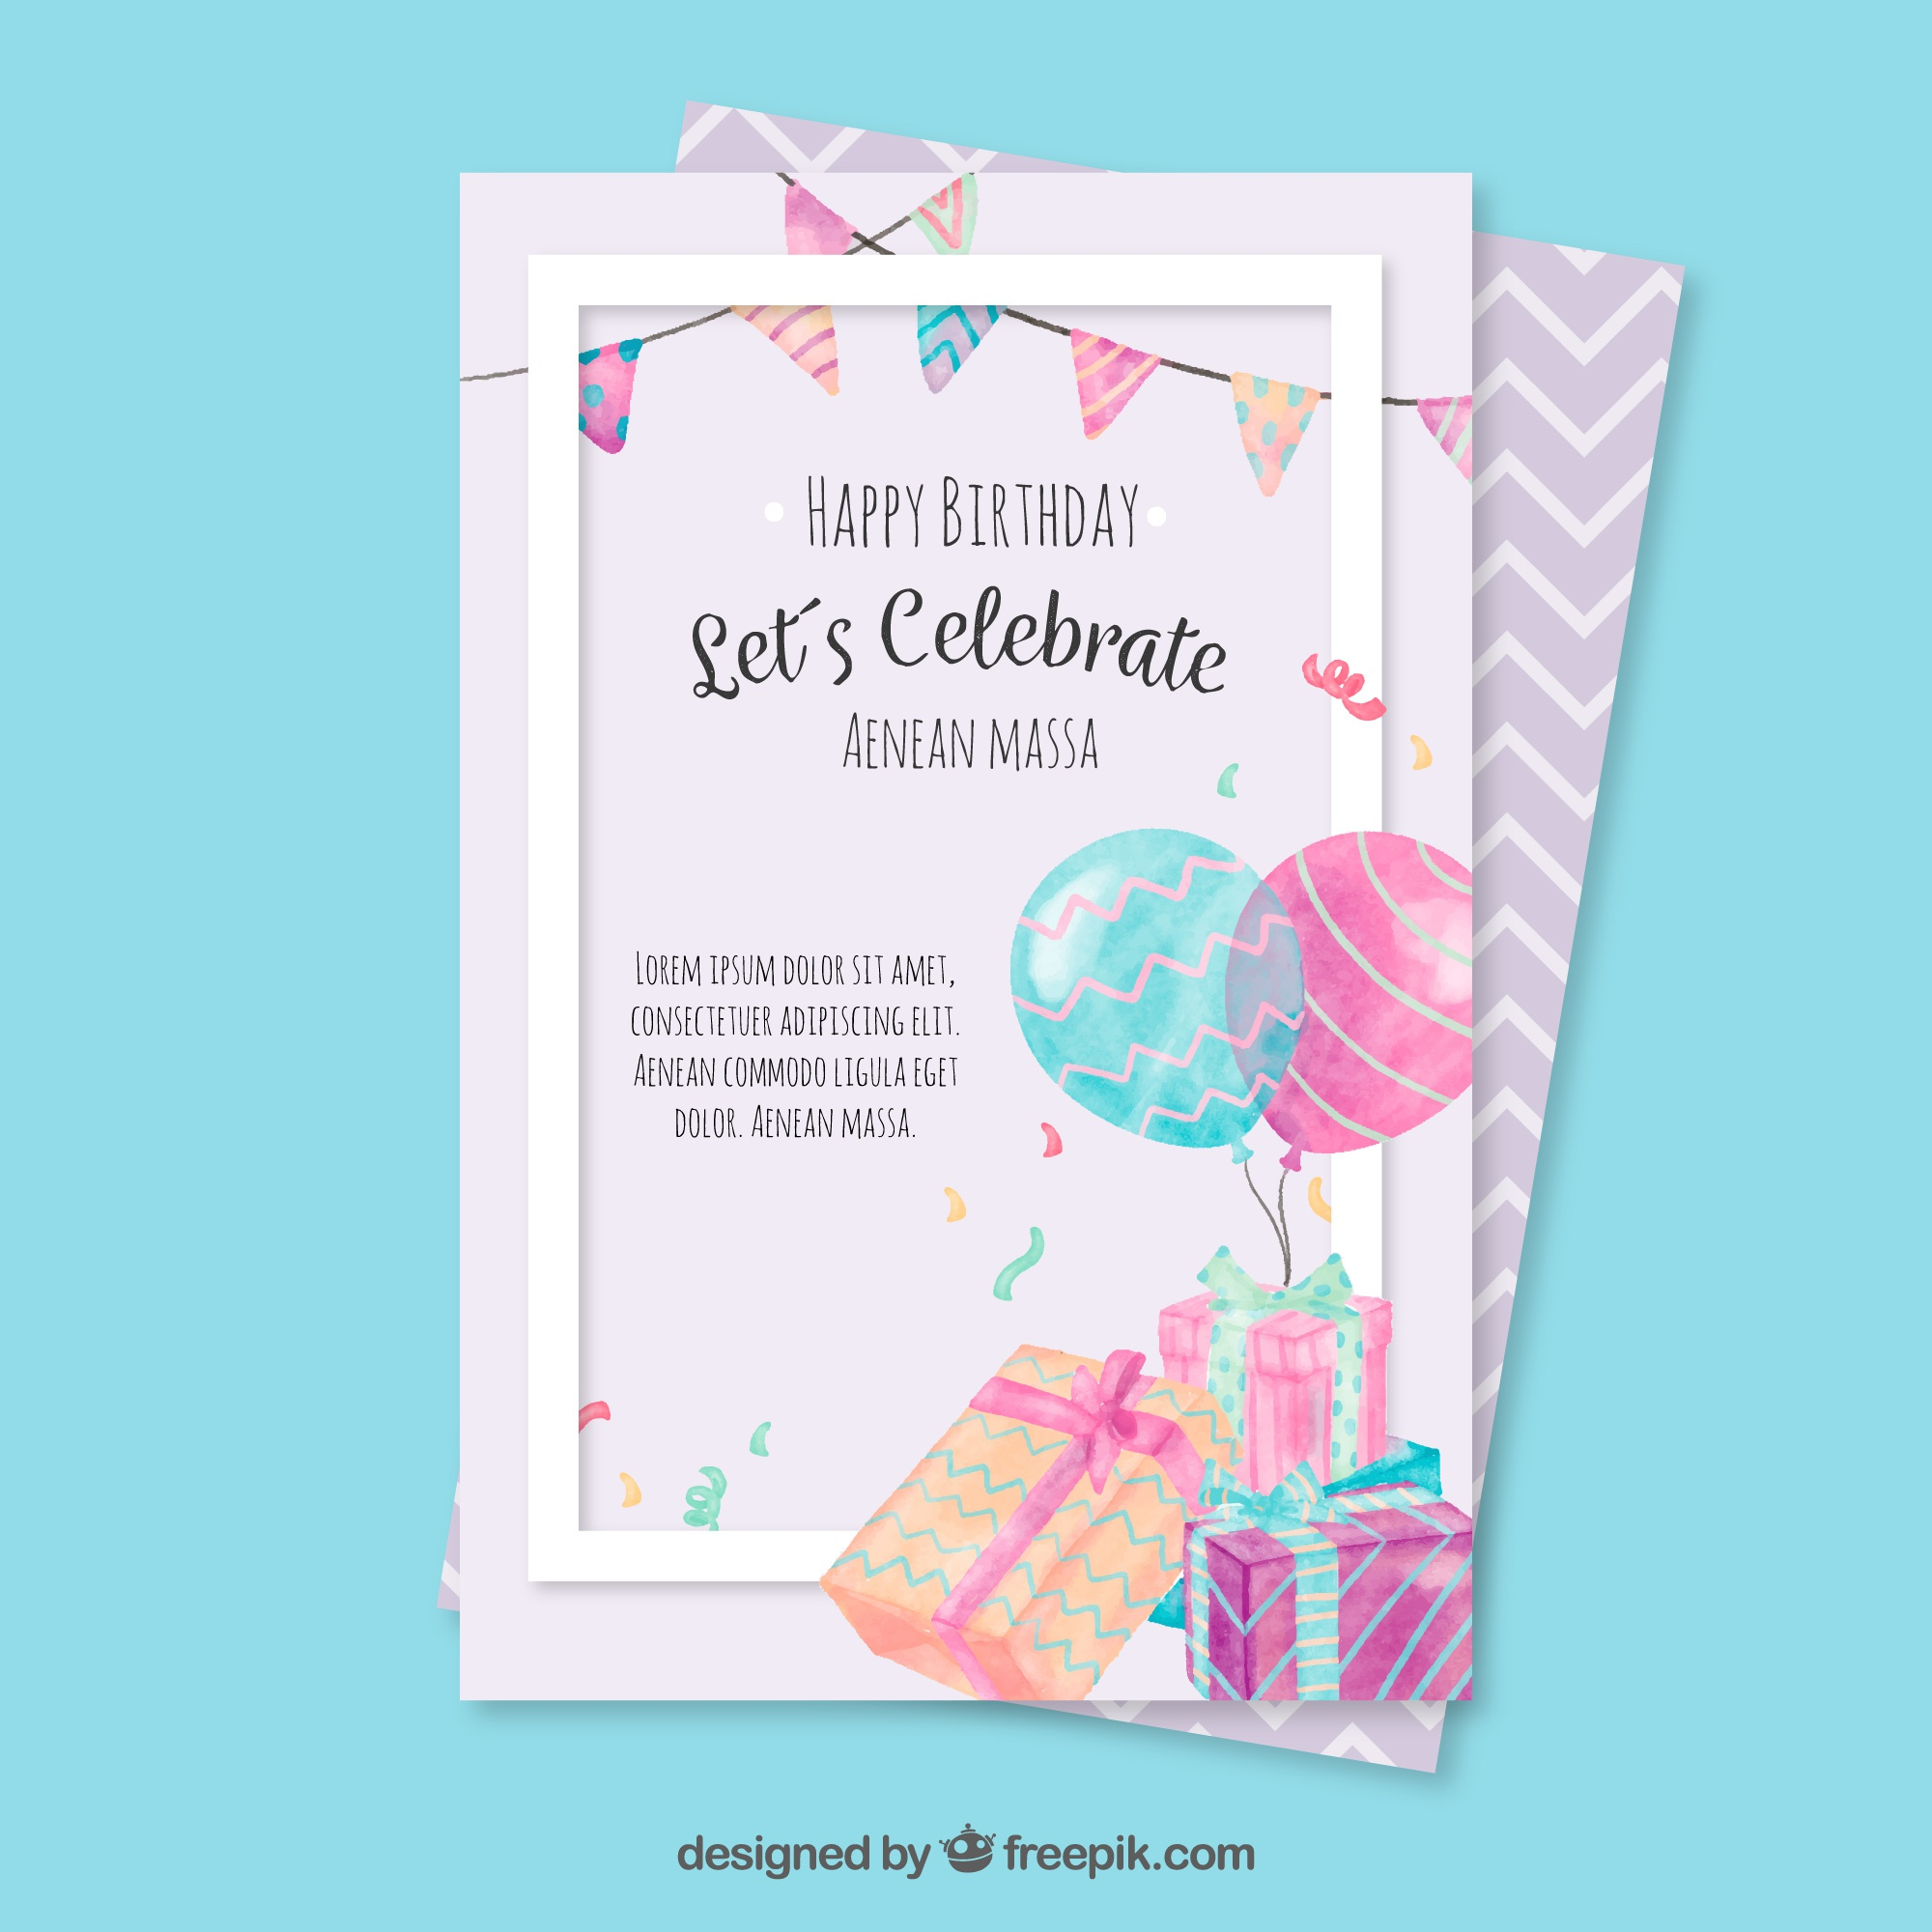 Birthday greeting card with watercolor elements